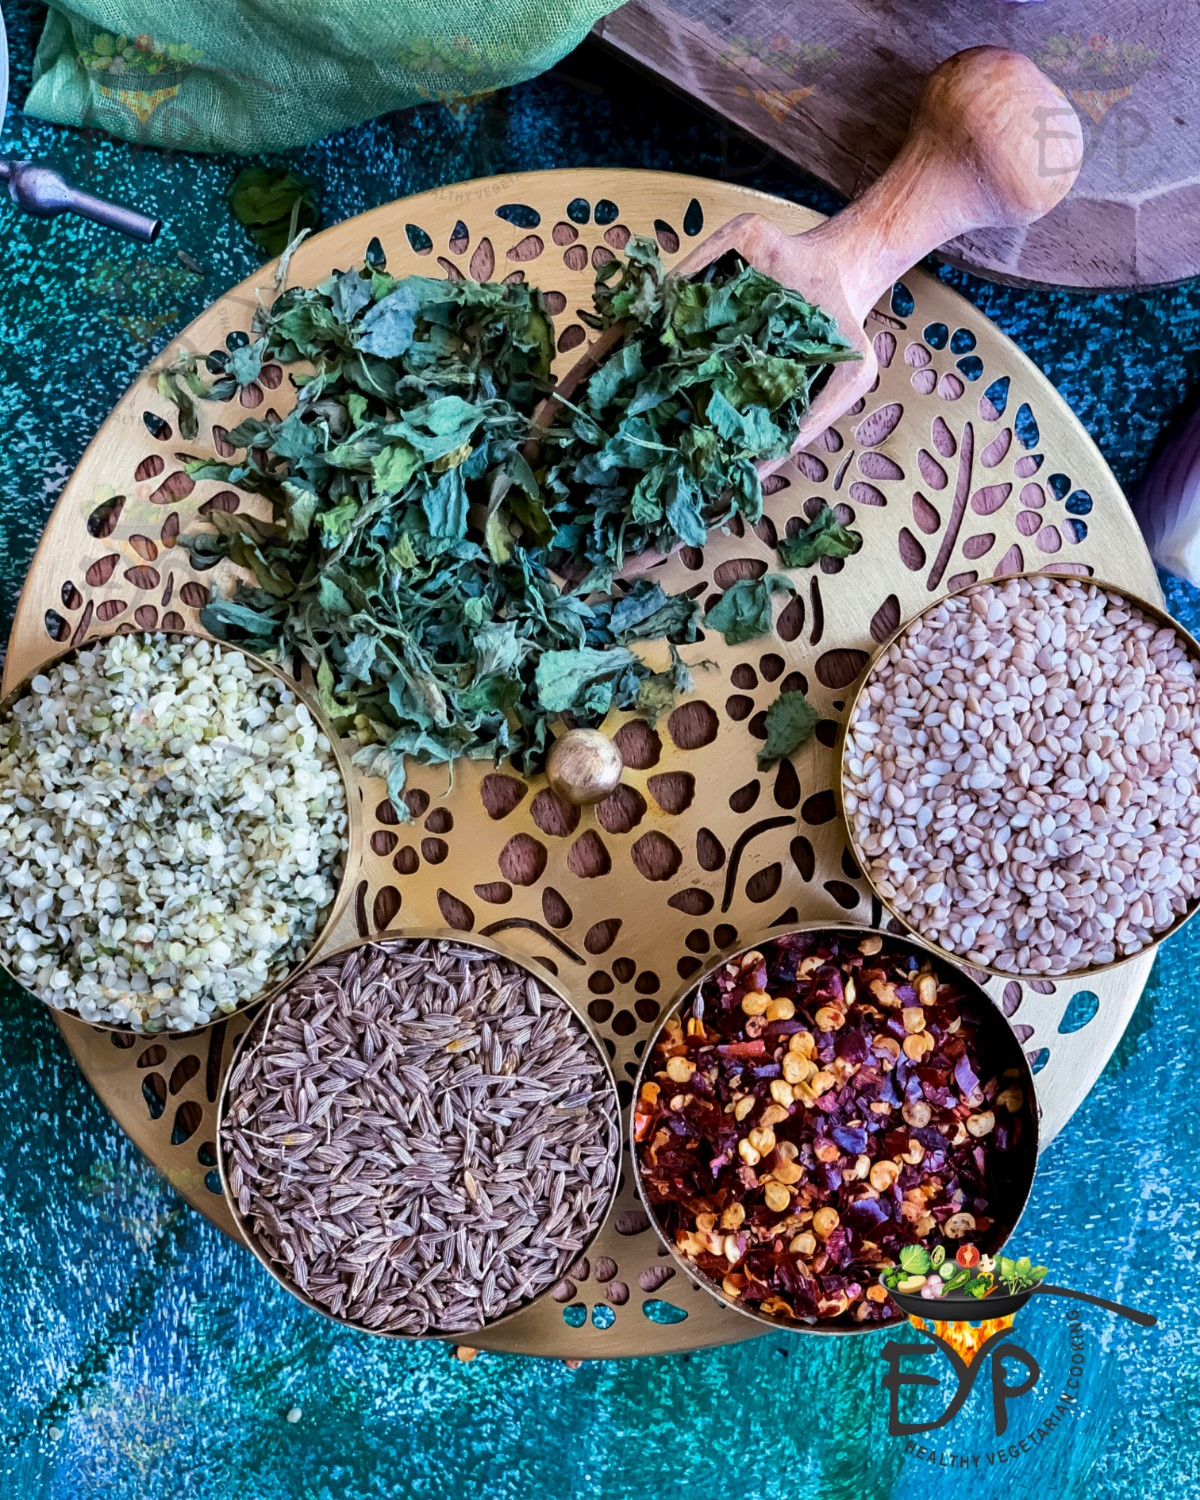 Herbs and seeds used in making the gluten free crackers